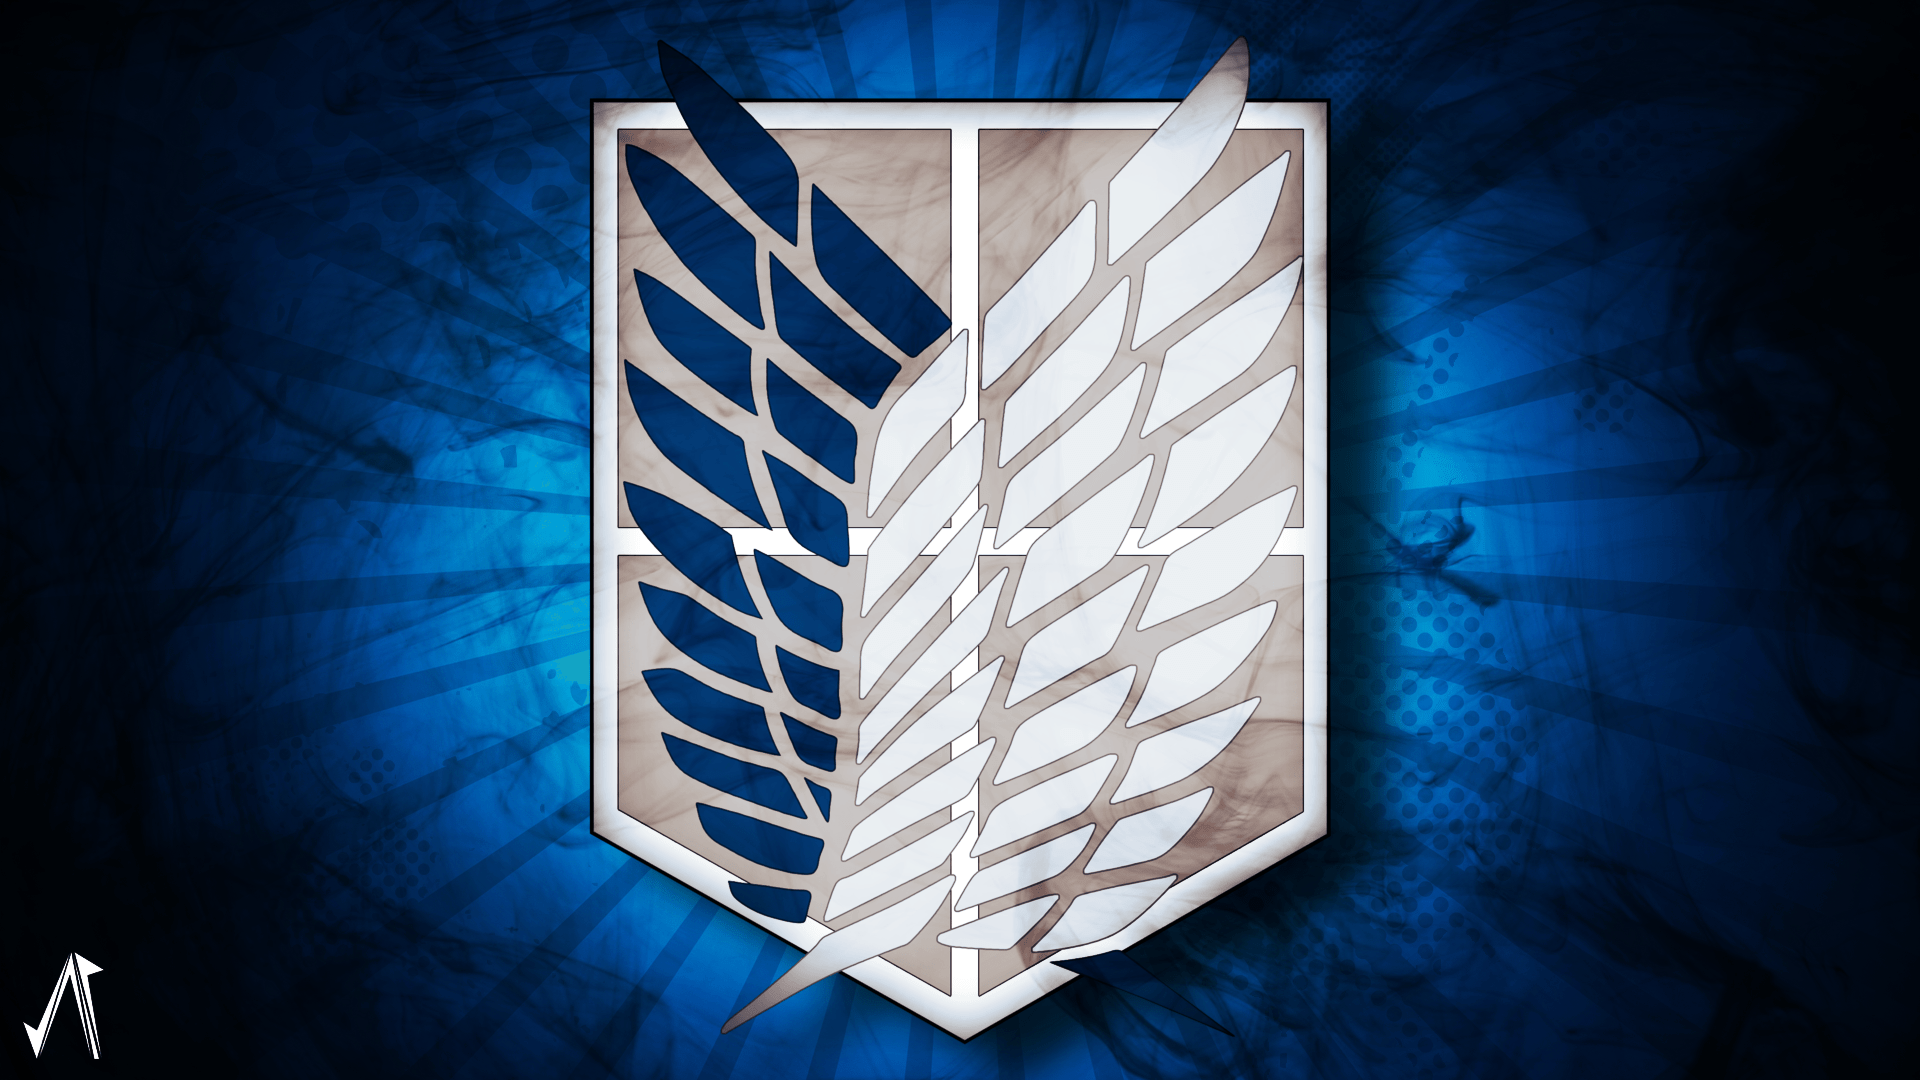 Attack On Titan Scout Regiment Symbol Posted By Ryan Simpson